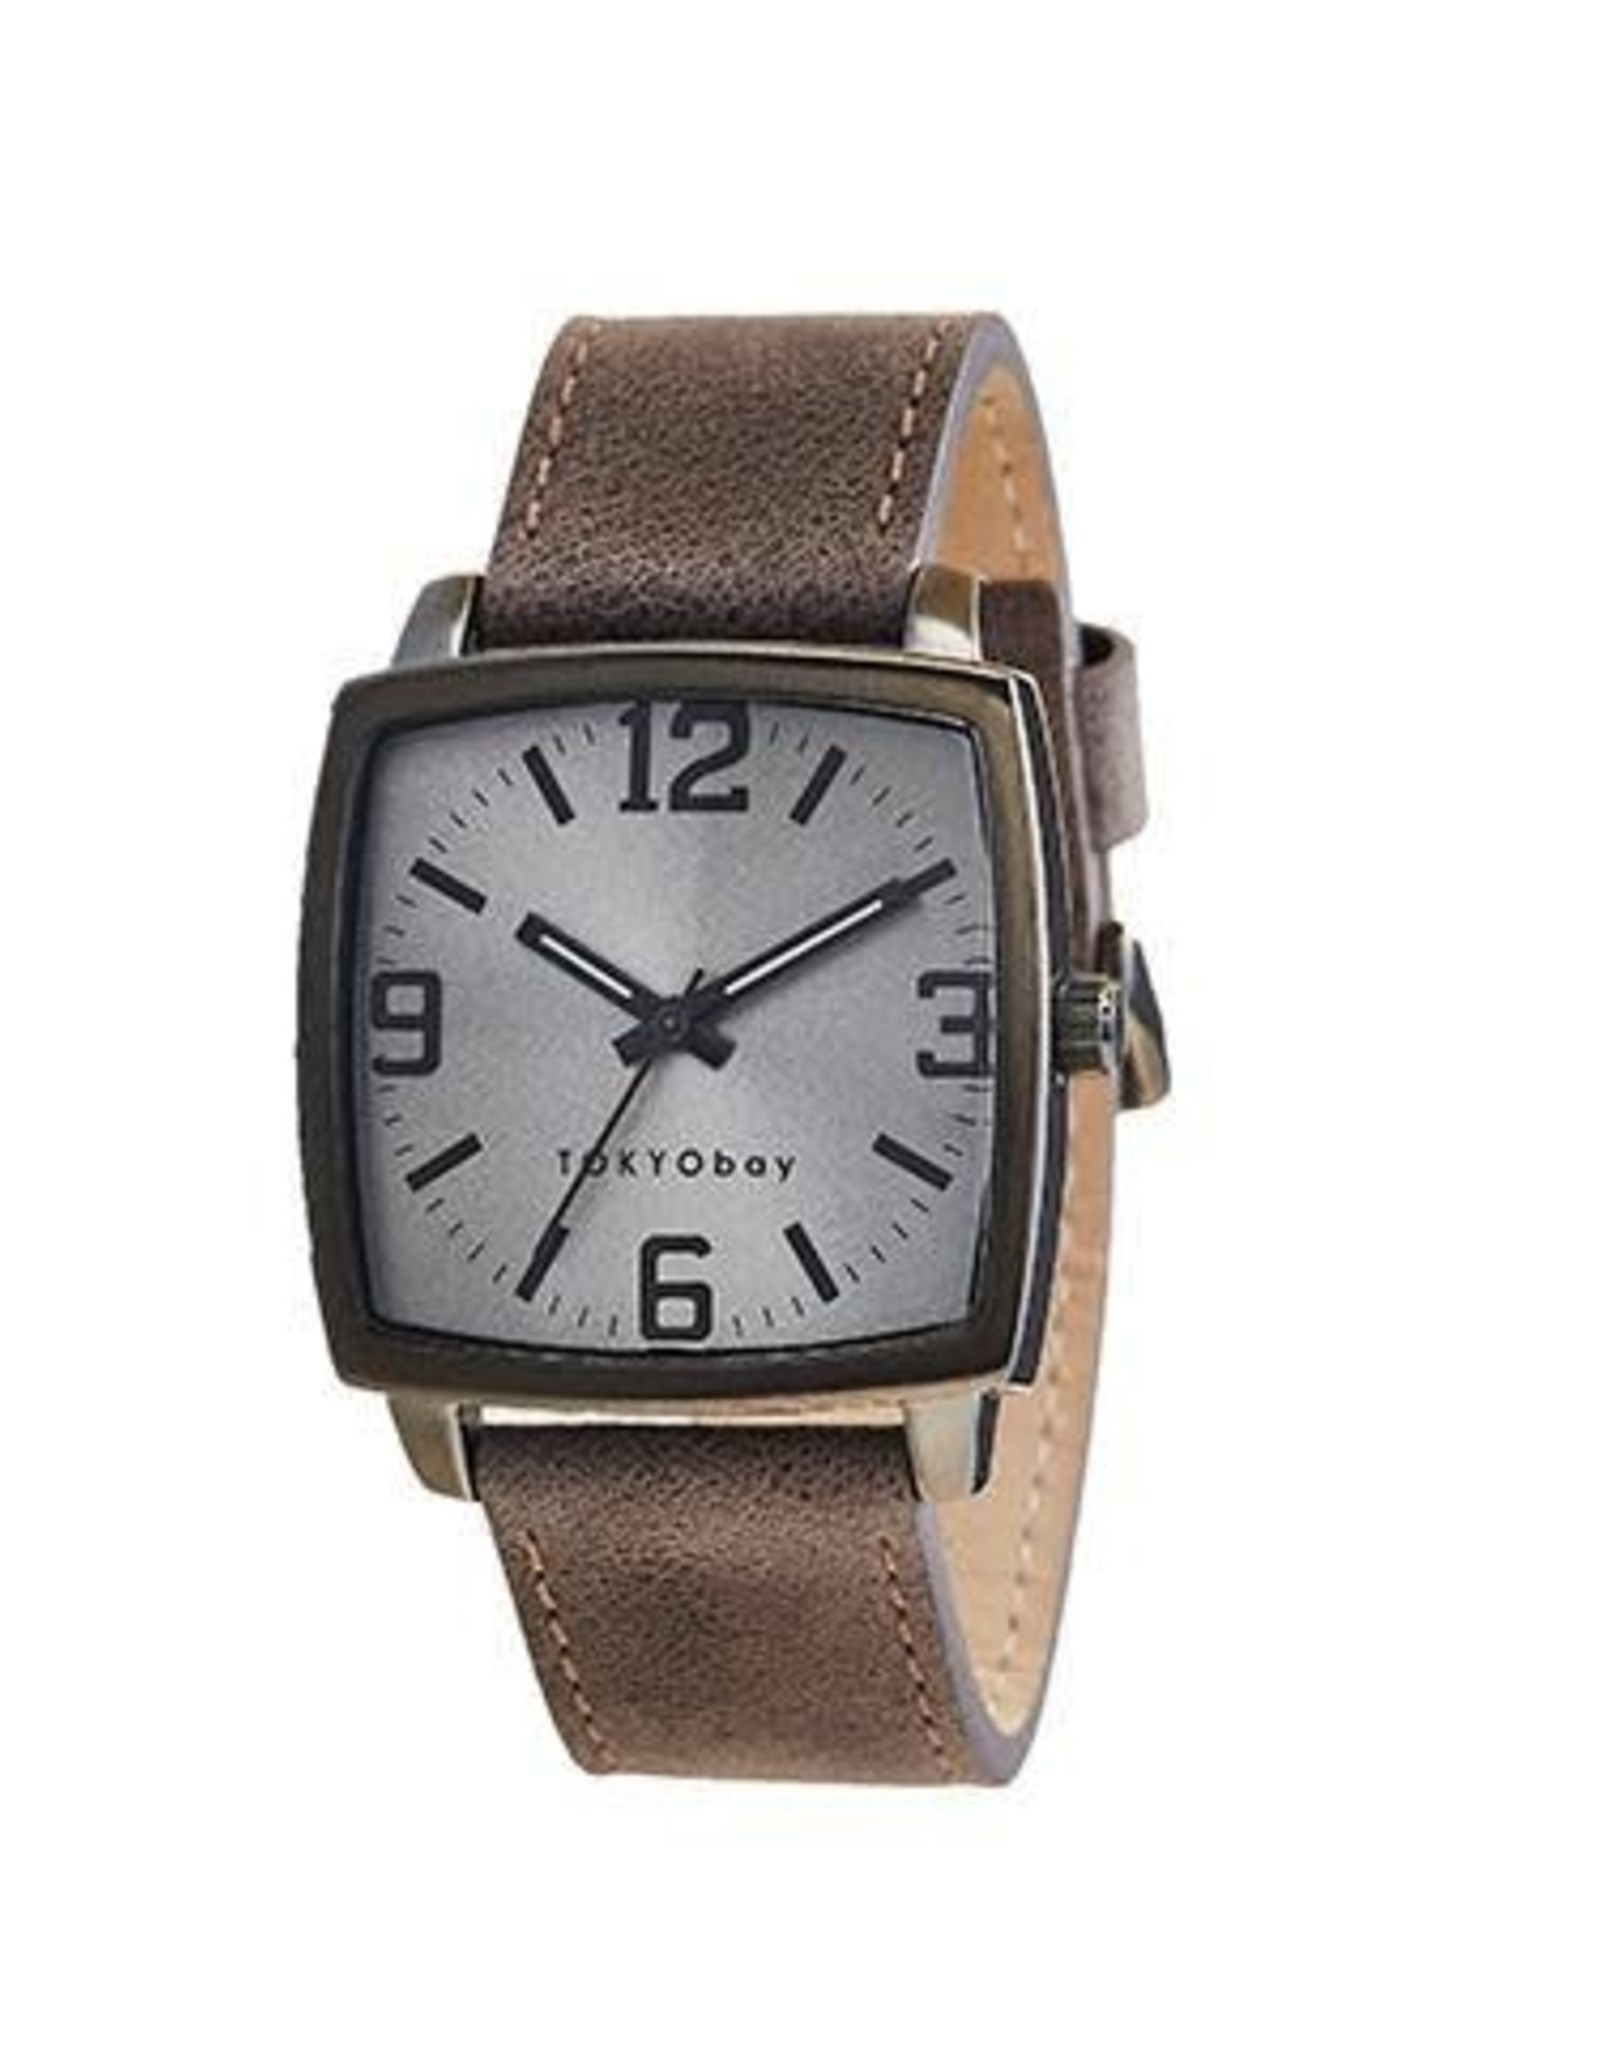 Pictor Watch, Square Silver Face with Brown Leather Strap